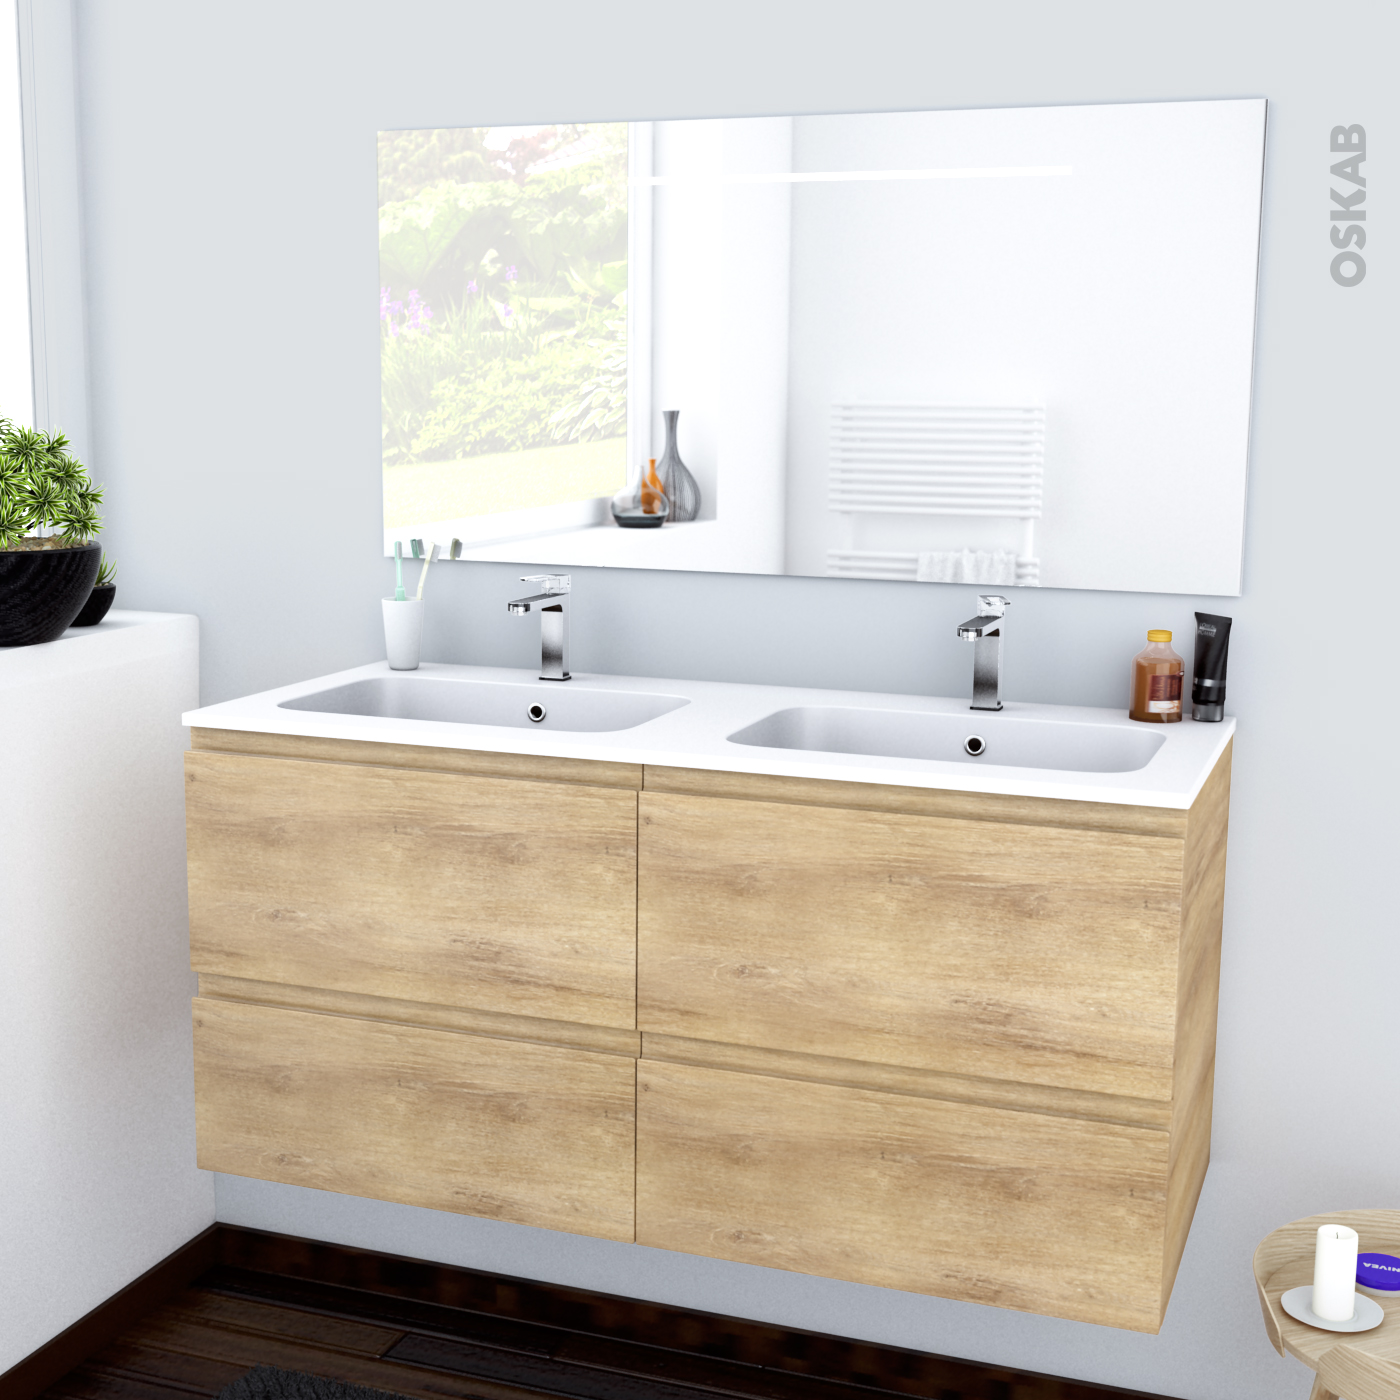 Lavabo double vasque retro simple beliani meuble meubles - Ensemble meuble salle de bain double vasque ...